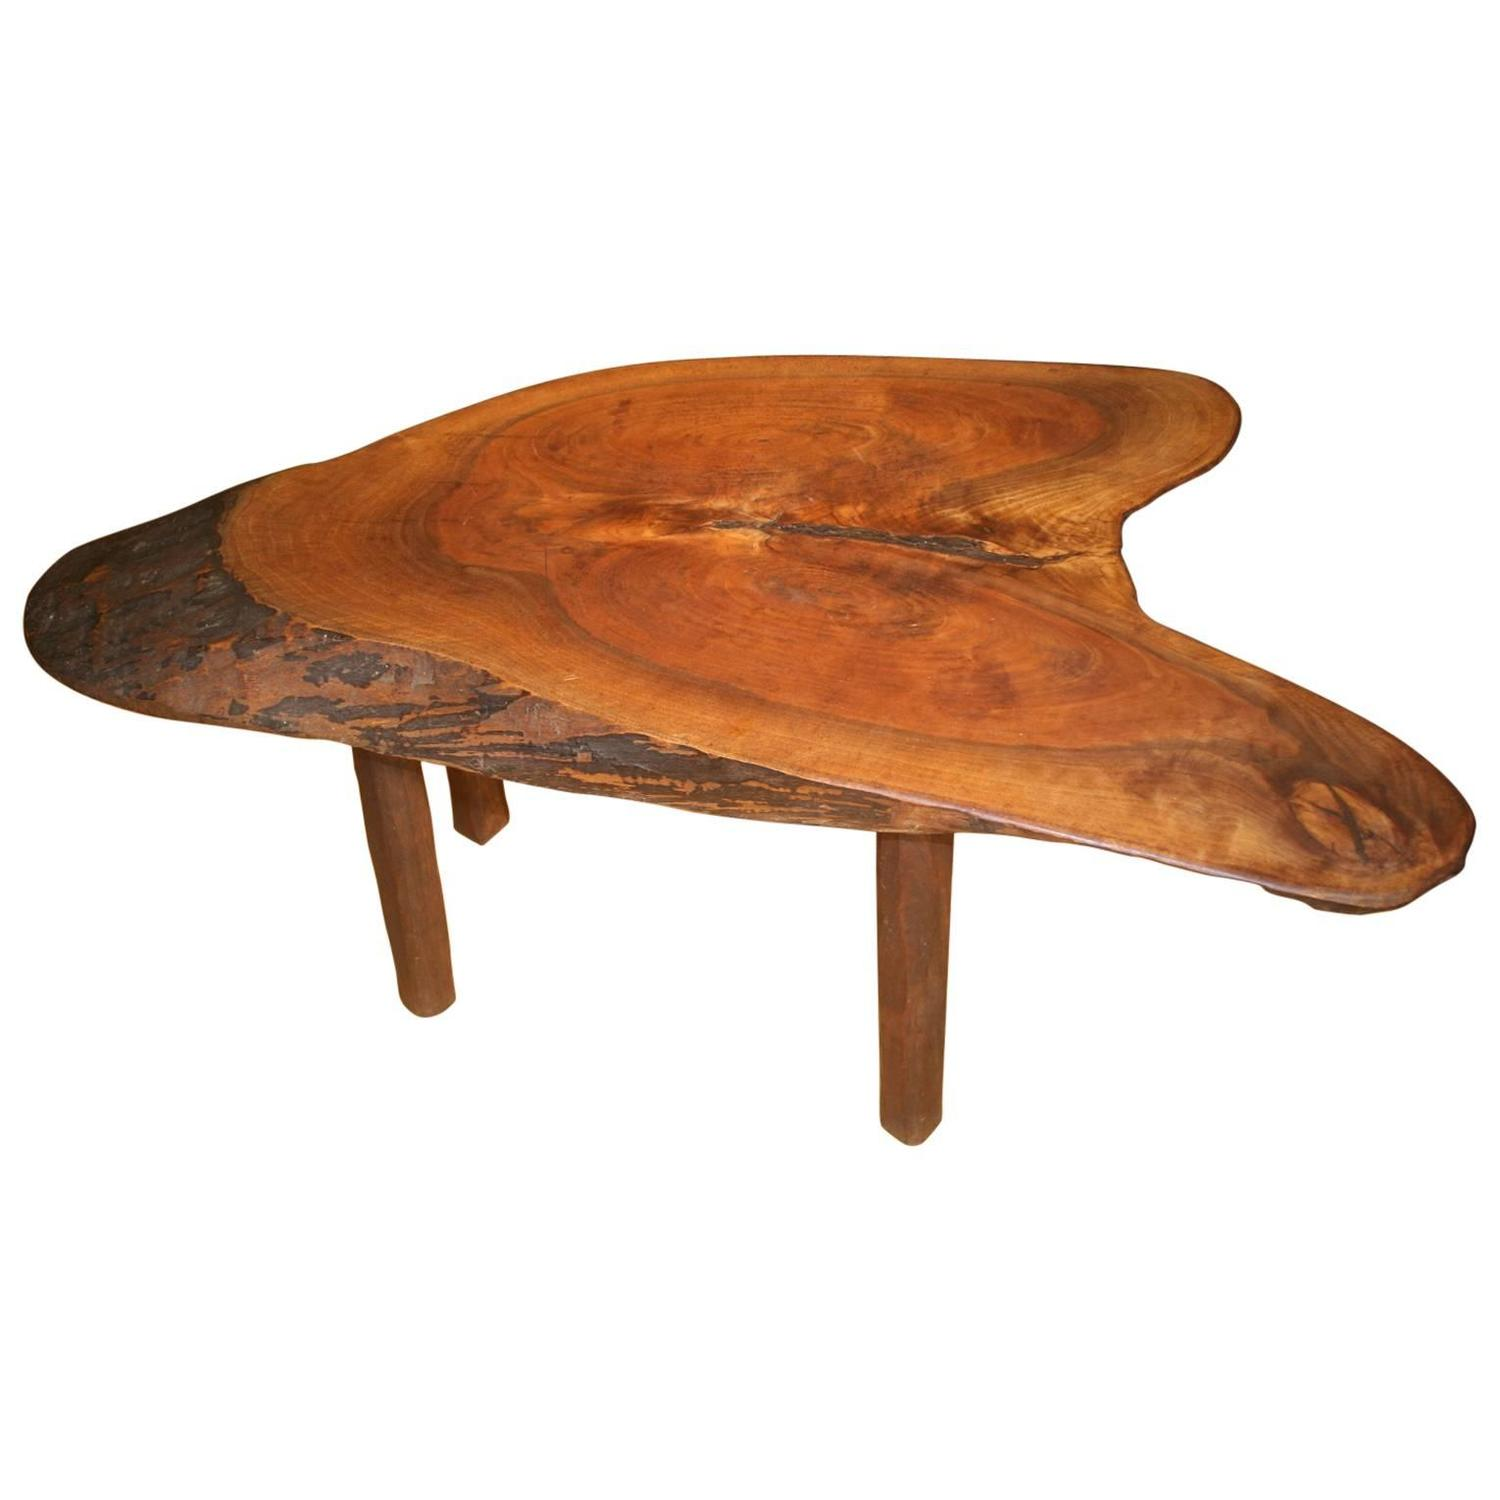 Natural form tree trunk coffee table at 1stdibs Trunk coffee tables